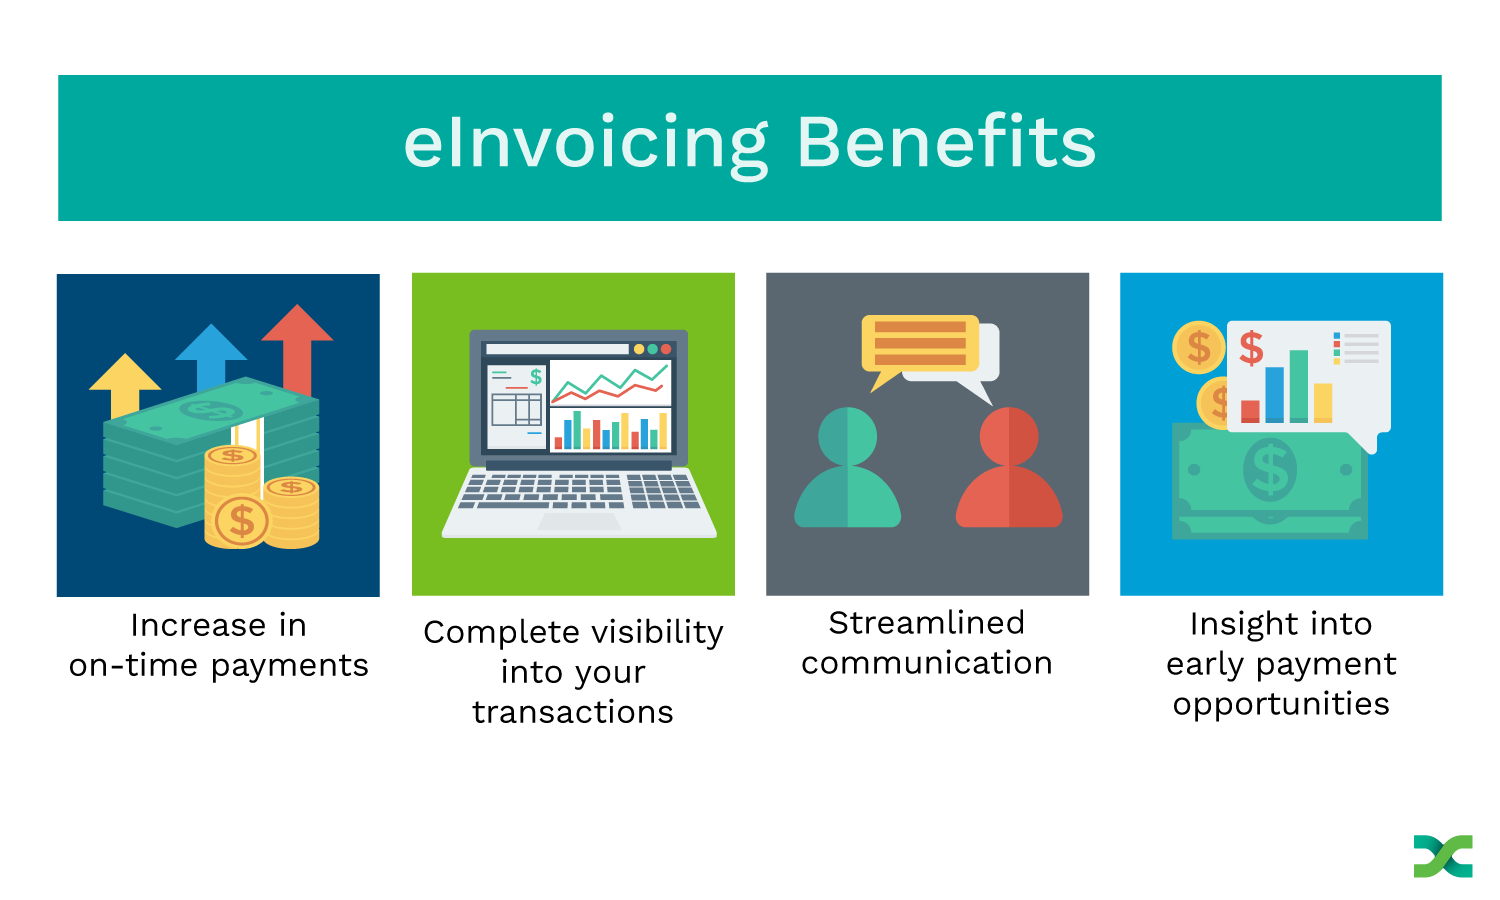 Four Benefits of eInvoicing